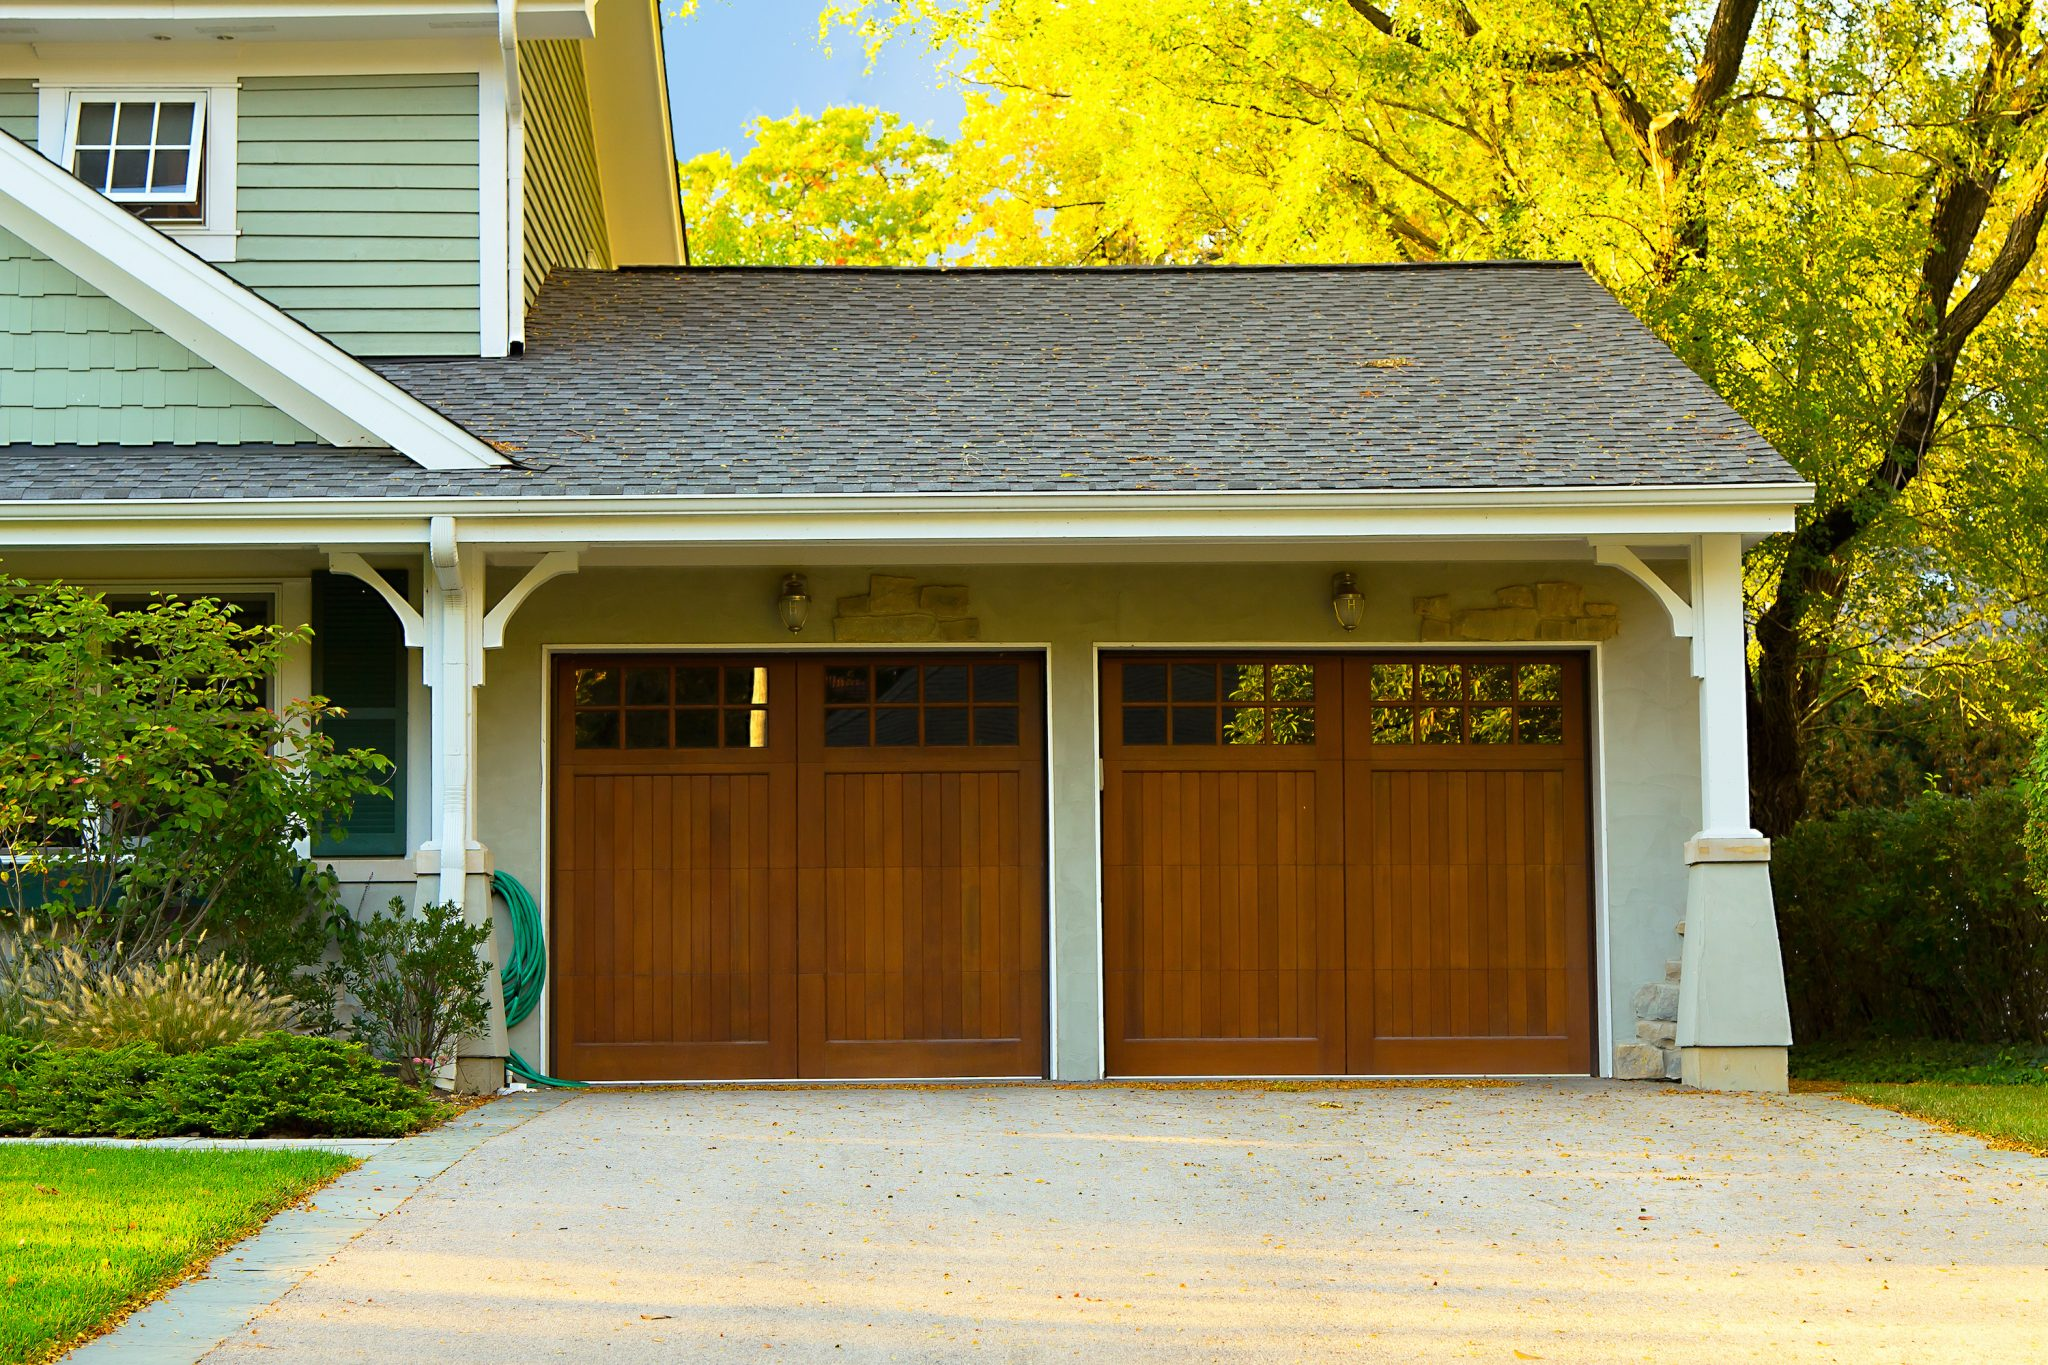 Garage and Garage Door Installation in Nanaimo BC: Should You Consider it? | Alpha Doors